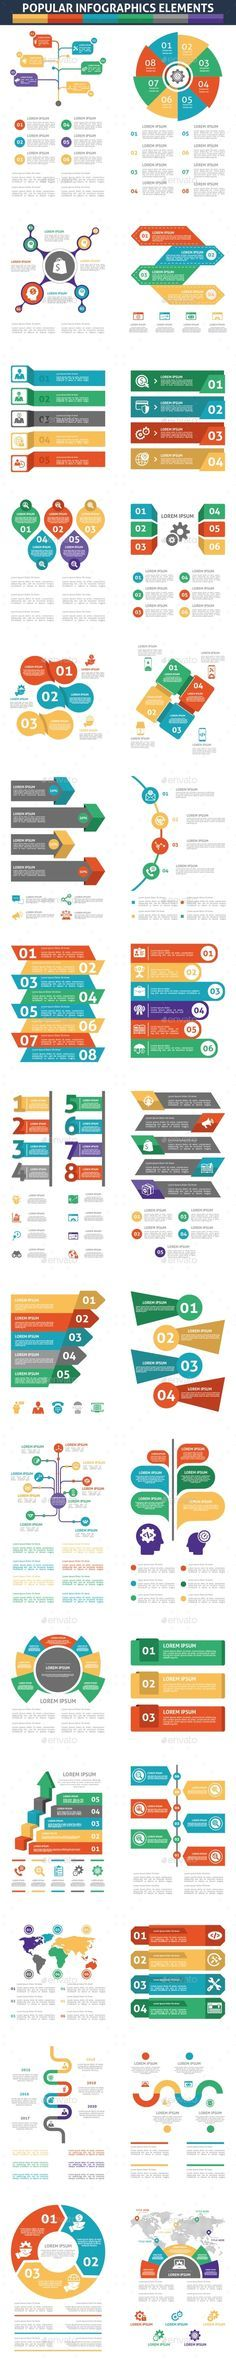 Popular Infographics Elements Templates PSD, Transparent PNG, Vector EPS, AI Illustrator